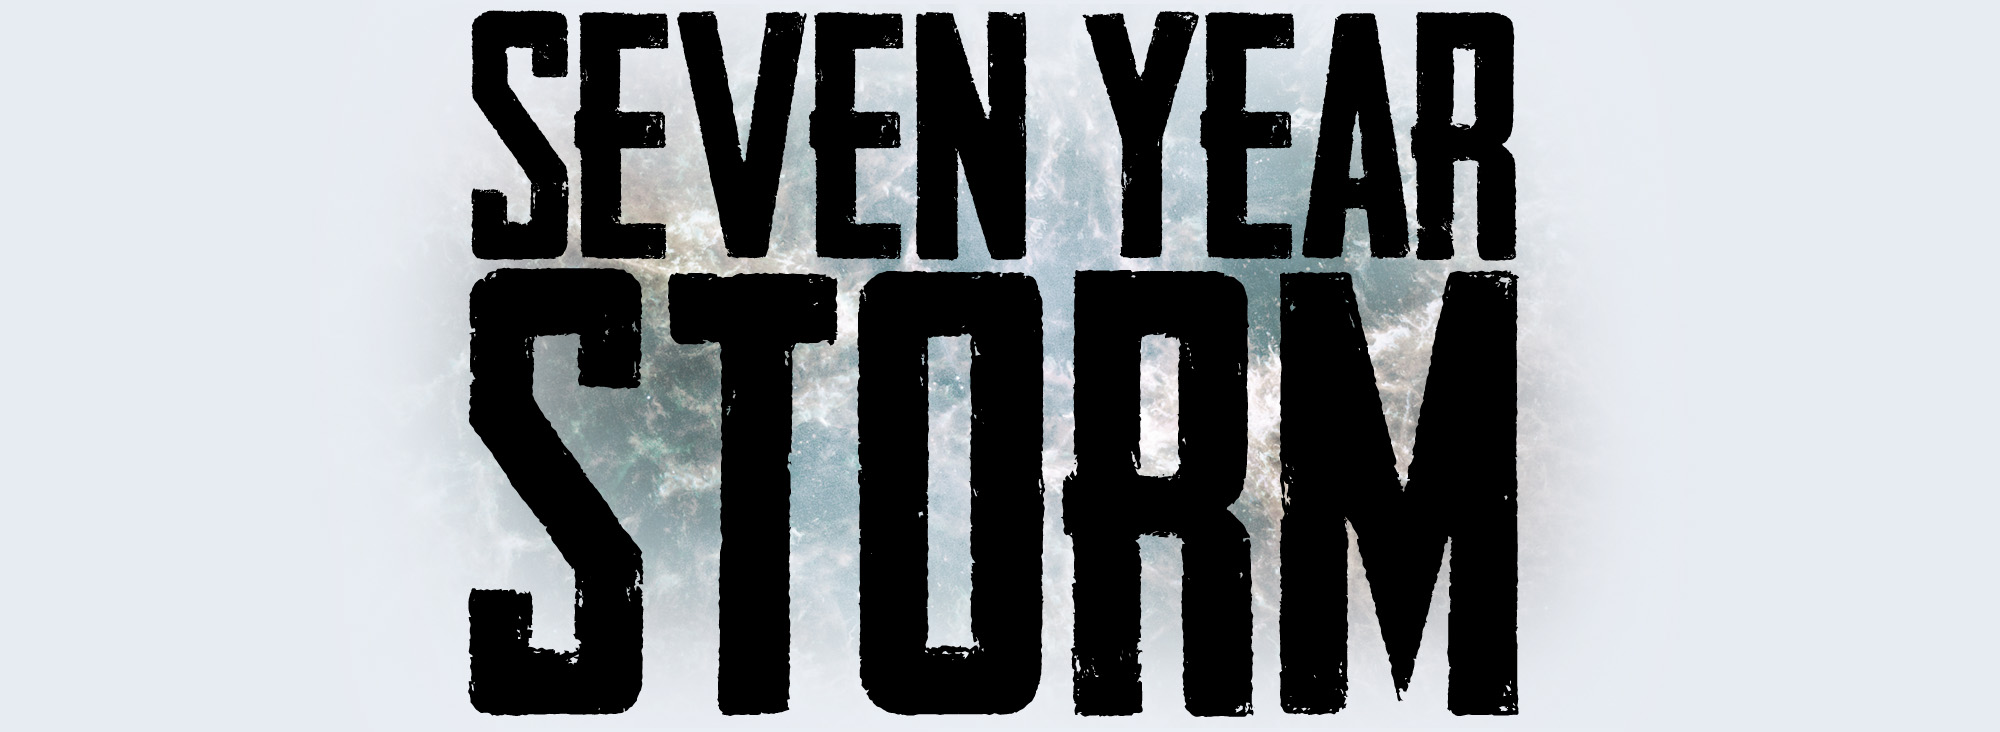 Seven Year Storm